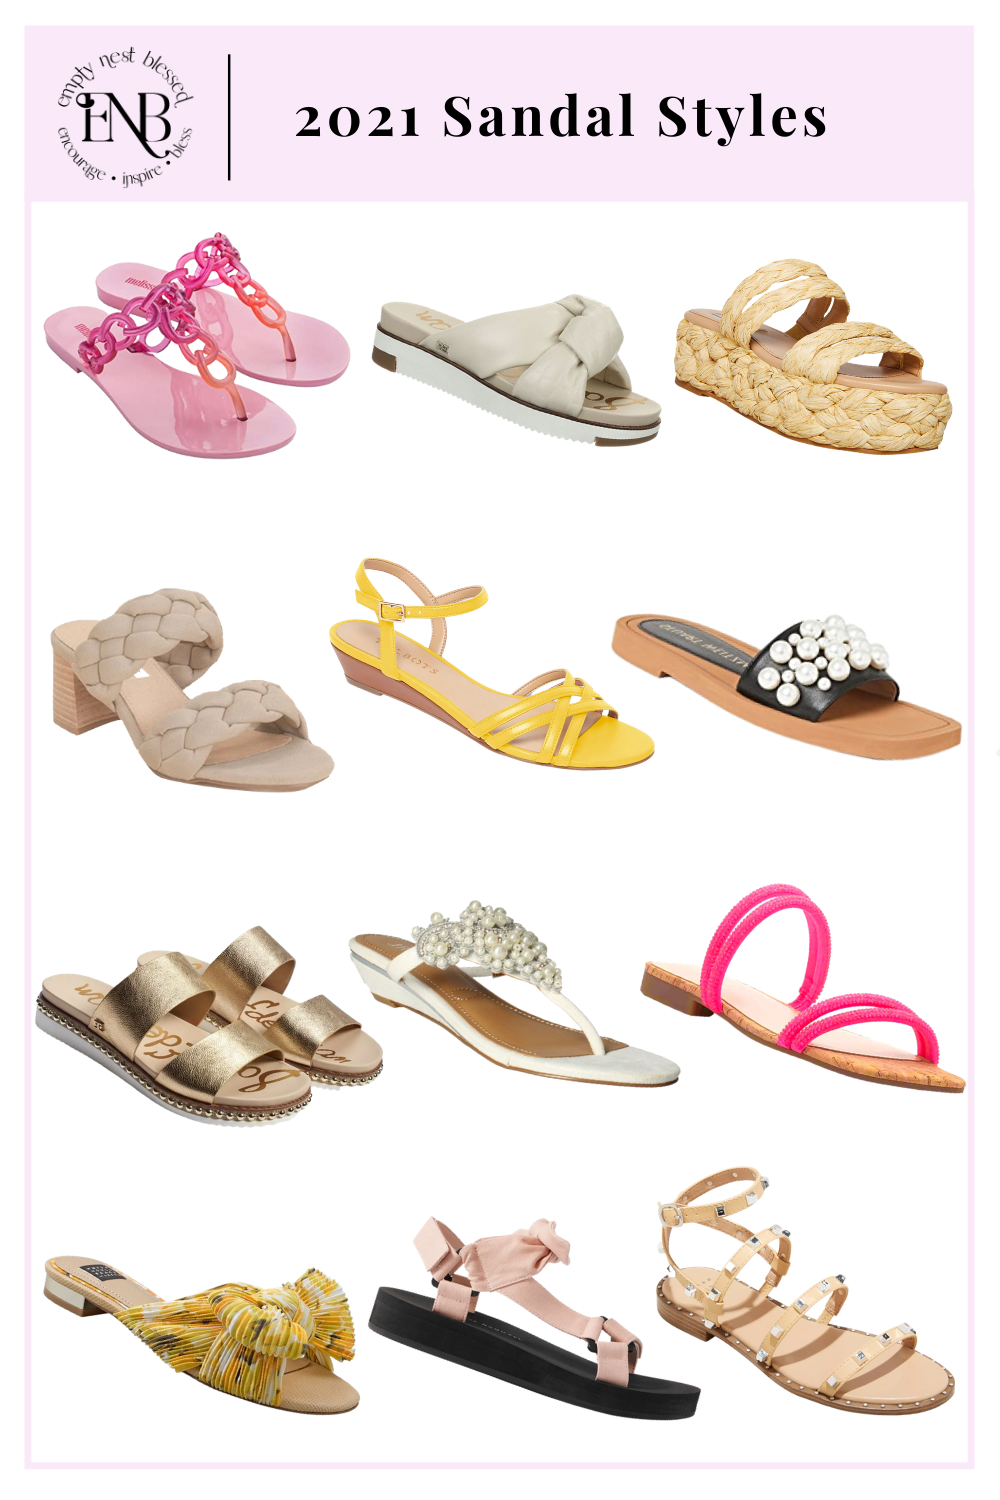 2021 Sandal Styles | Six Looks to Shop For Summer